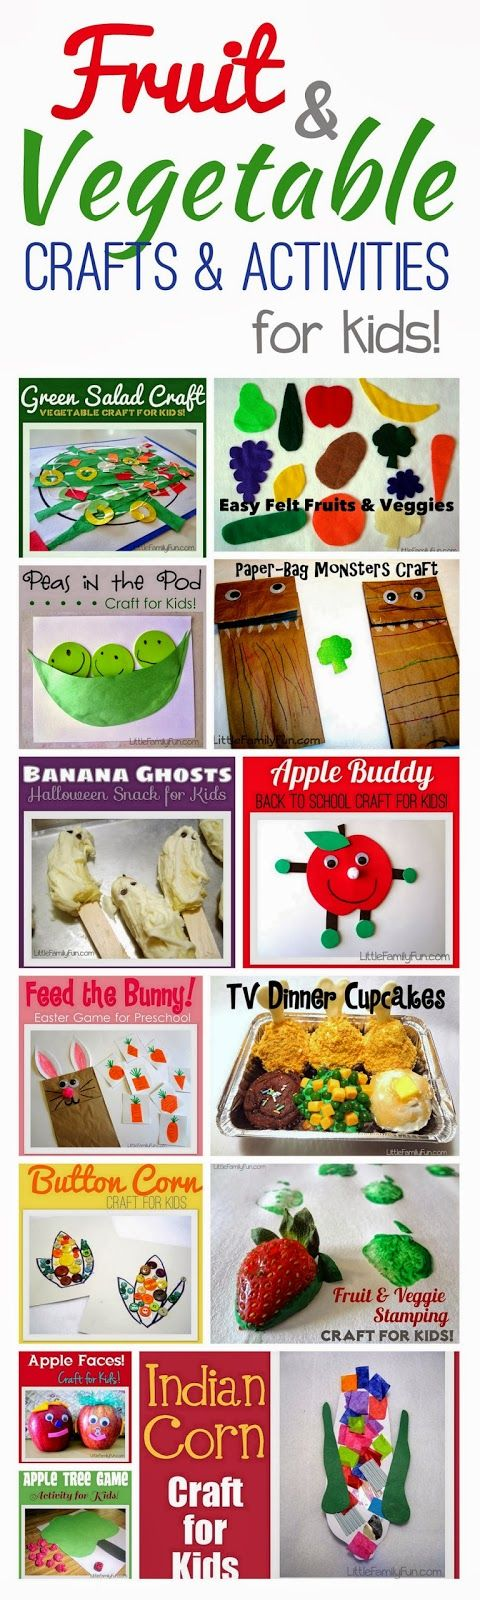 Fruit & Veggie crafts & activities. Fun way to teach kids about eating healthy!